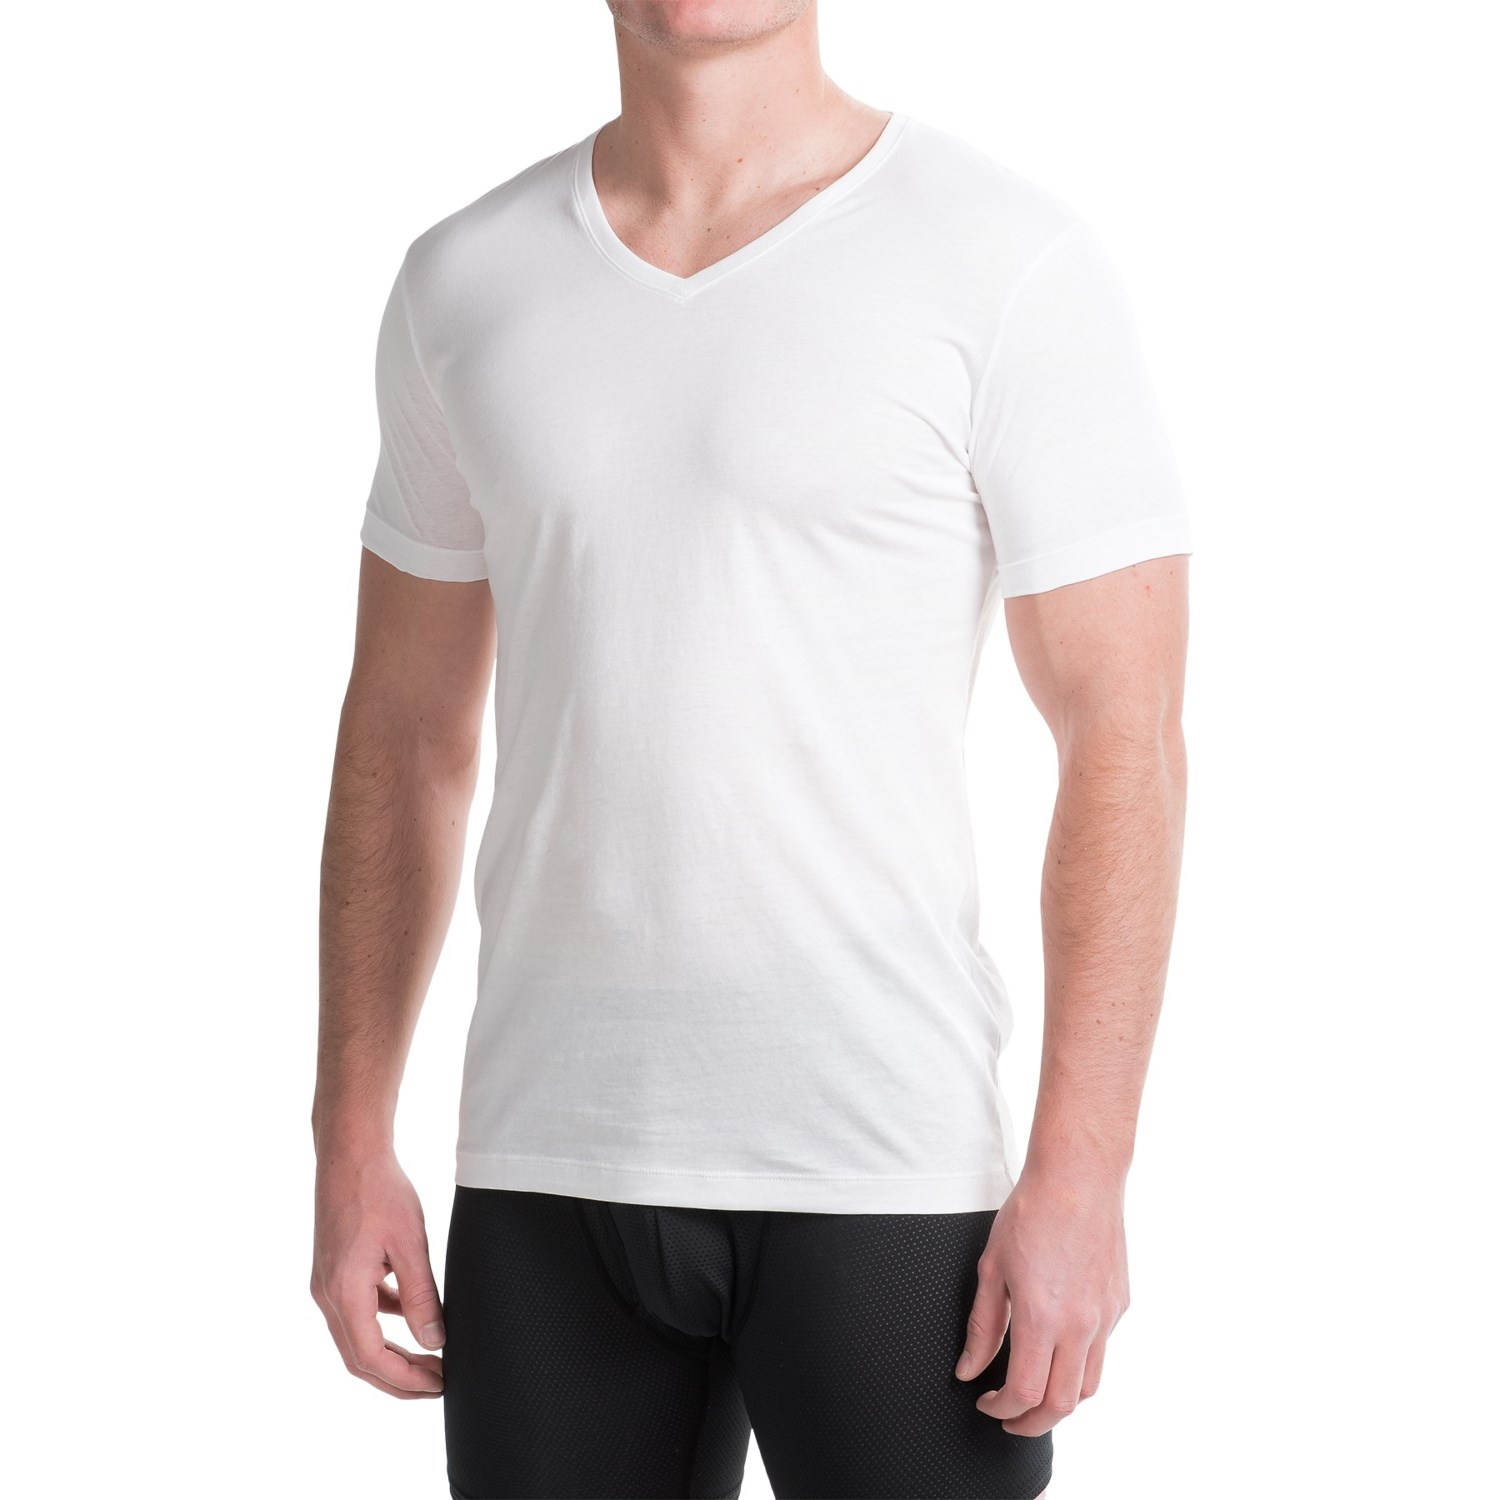 A proprietary blend of cotton, beech wood modal, and Lycra®, this fabric rests for 18 hours before it's cut. The result is a truer and more consistent fit. Learn more.